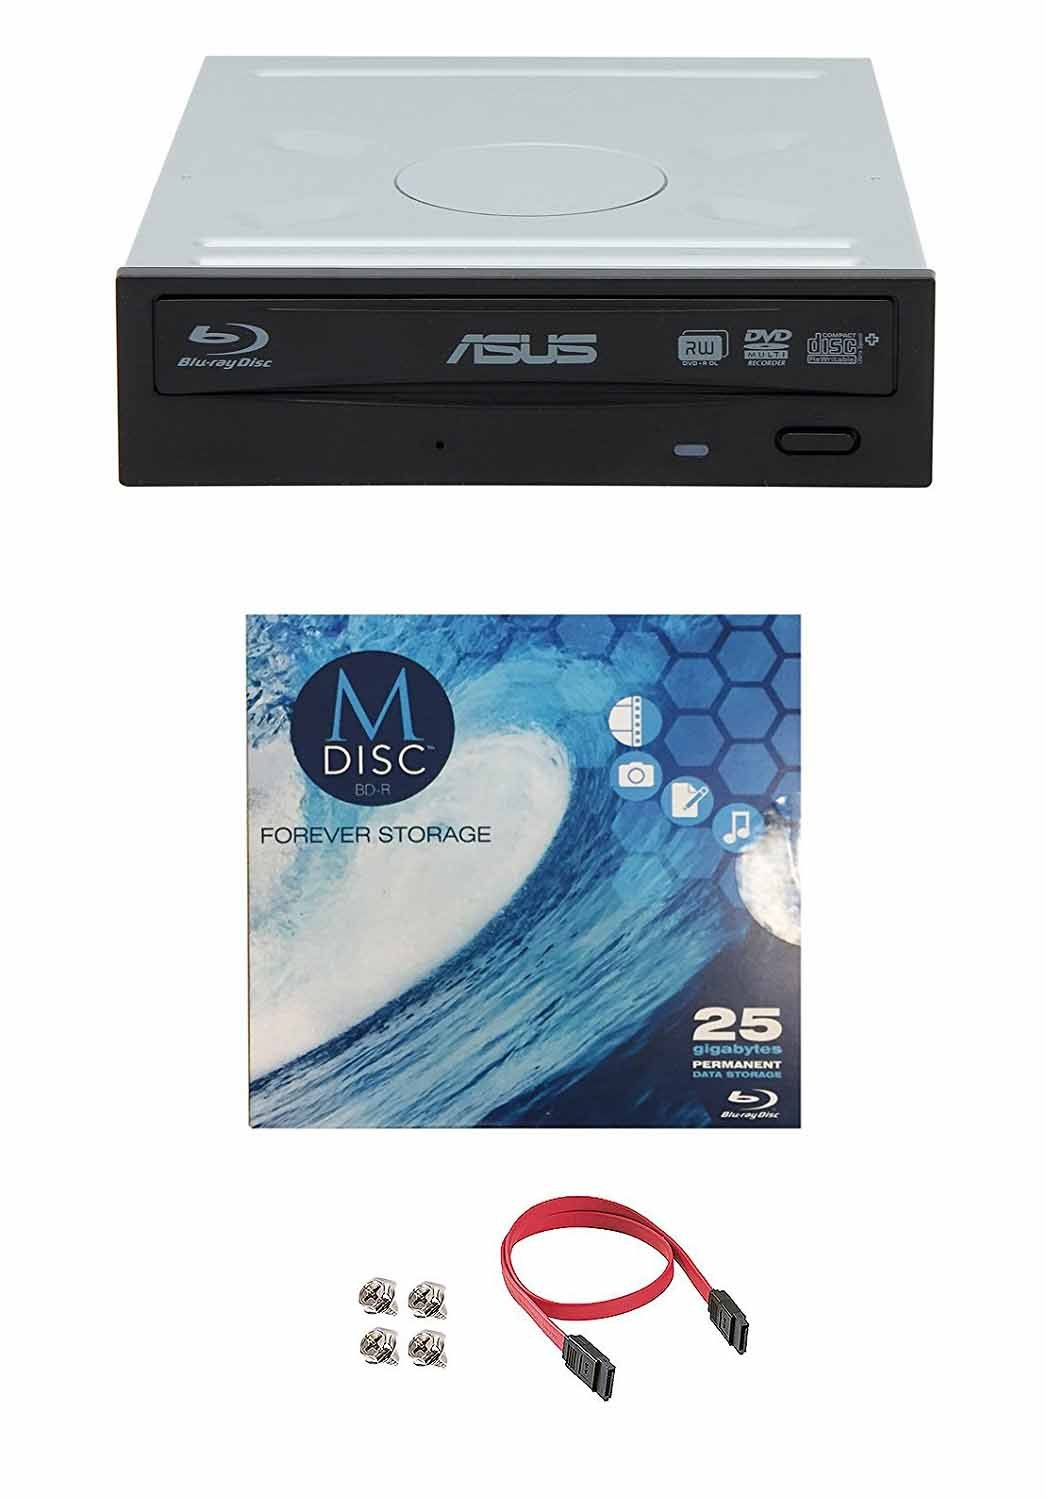 Asus 16X BW-16D1HT Internal Blu-ray Burner Drive Bundle with 1 Pack M-DISC BD, Cable Accessories and Mounting Screws (Supports BDXL and M-Disc, Retail Box) by ASUS